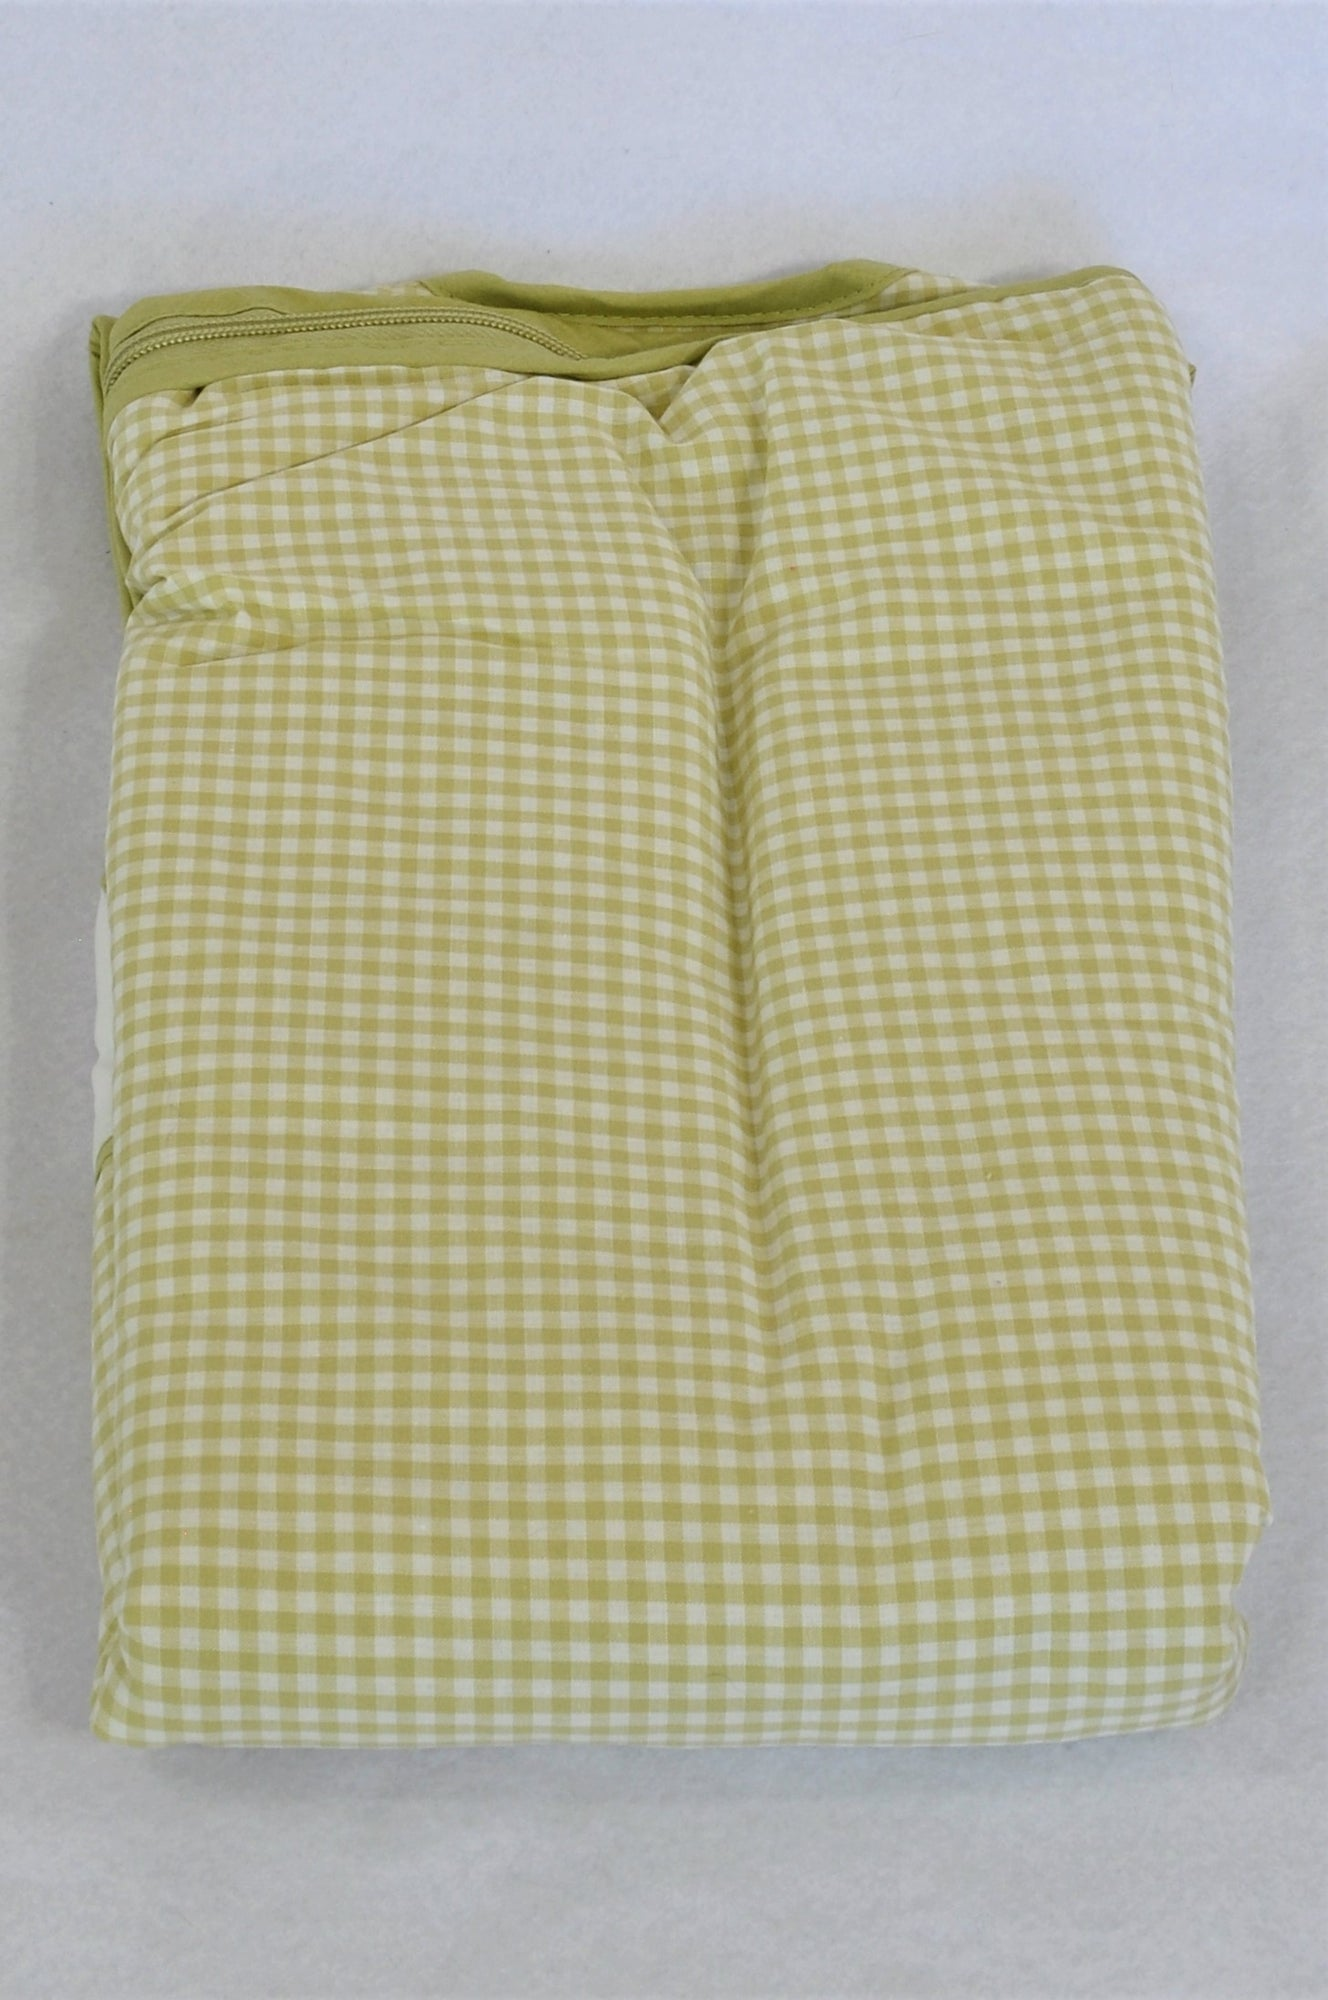 New Ikea Fabler 2.5 Tog Green Gingham Sleep Sack Unisex 0-6 months